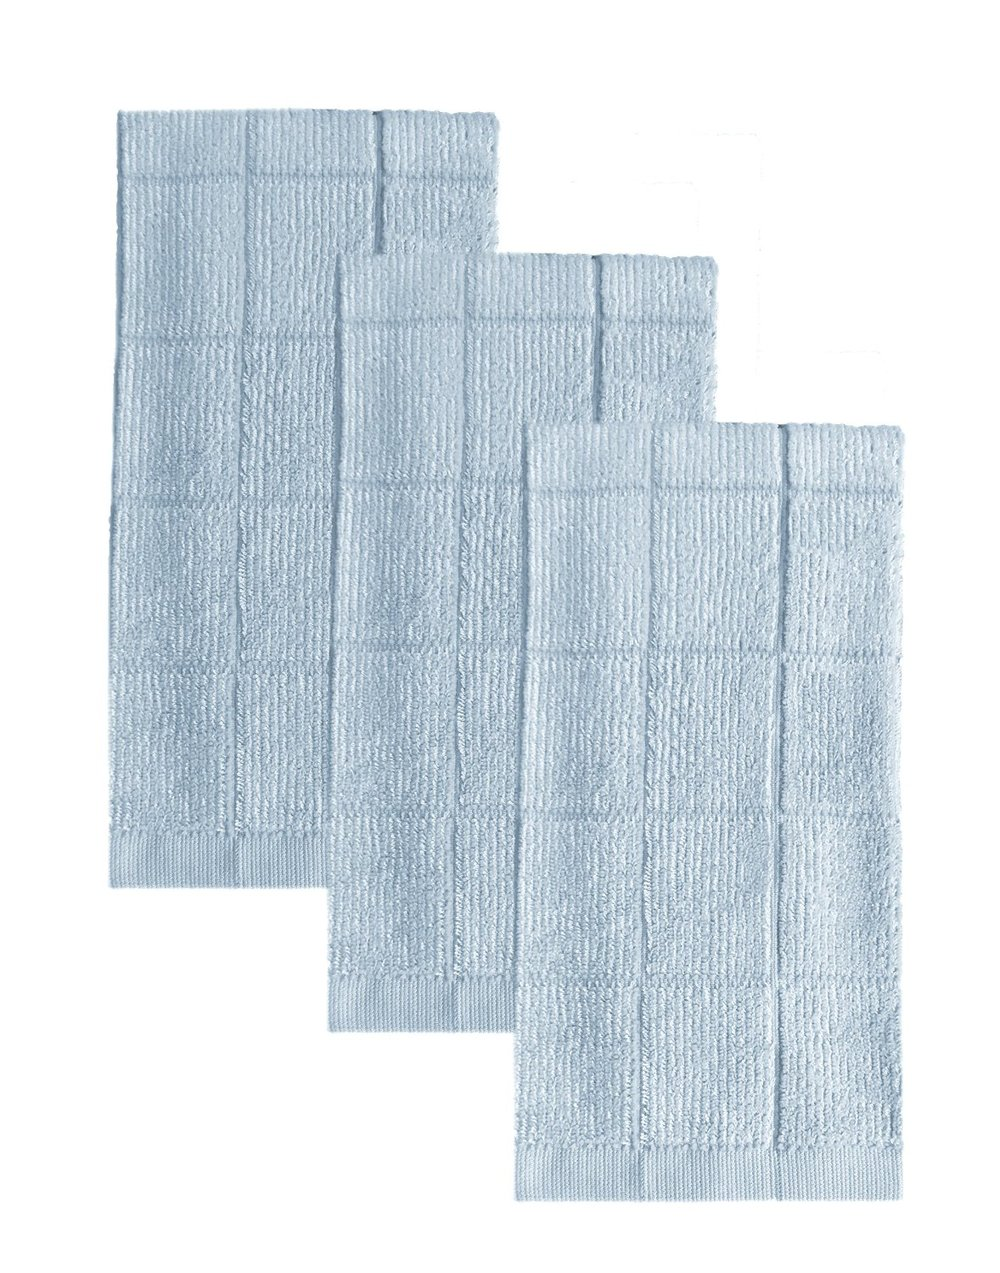 Sky Blue Bamboo Kitchen Towel - Set of 3.jpg